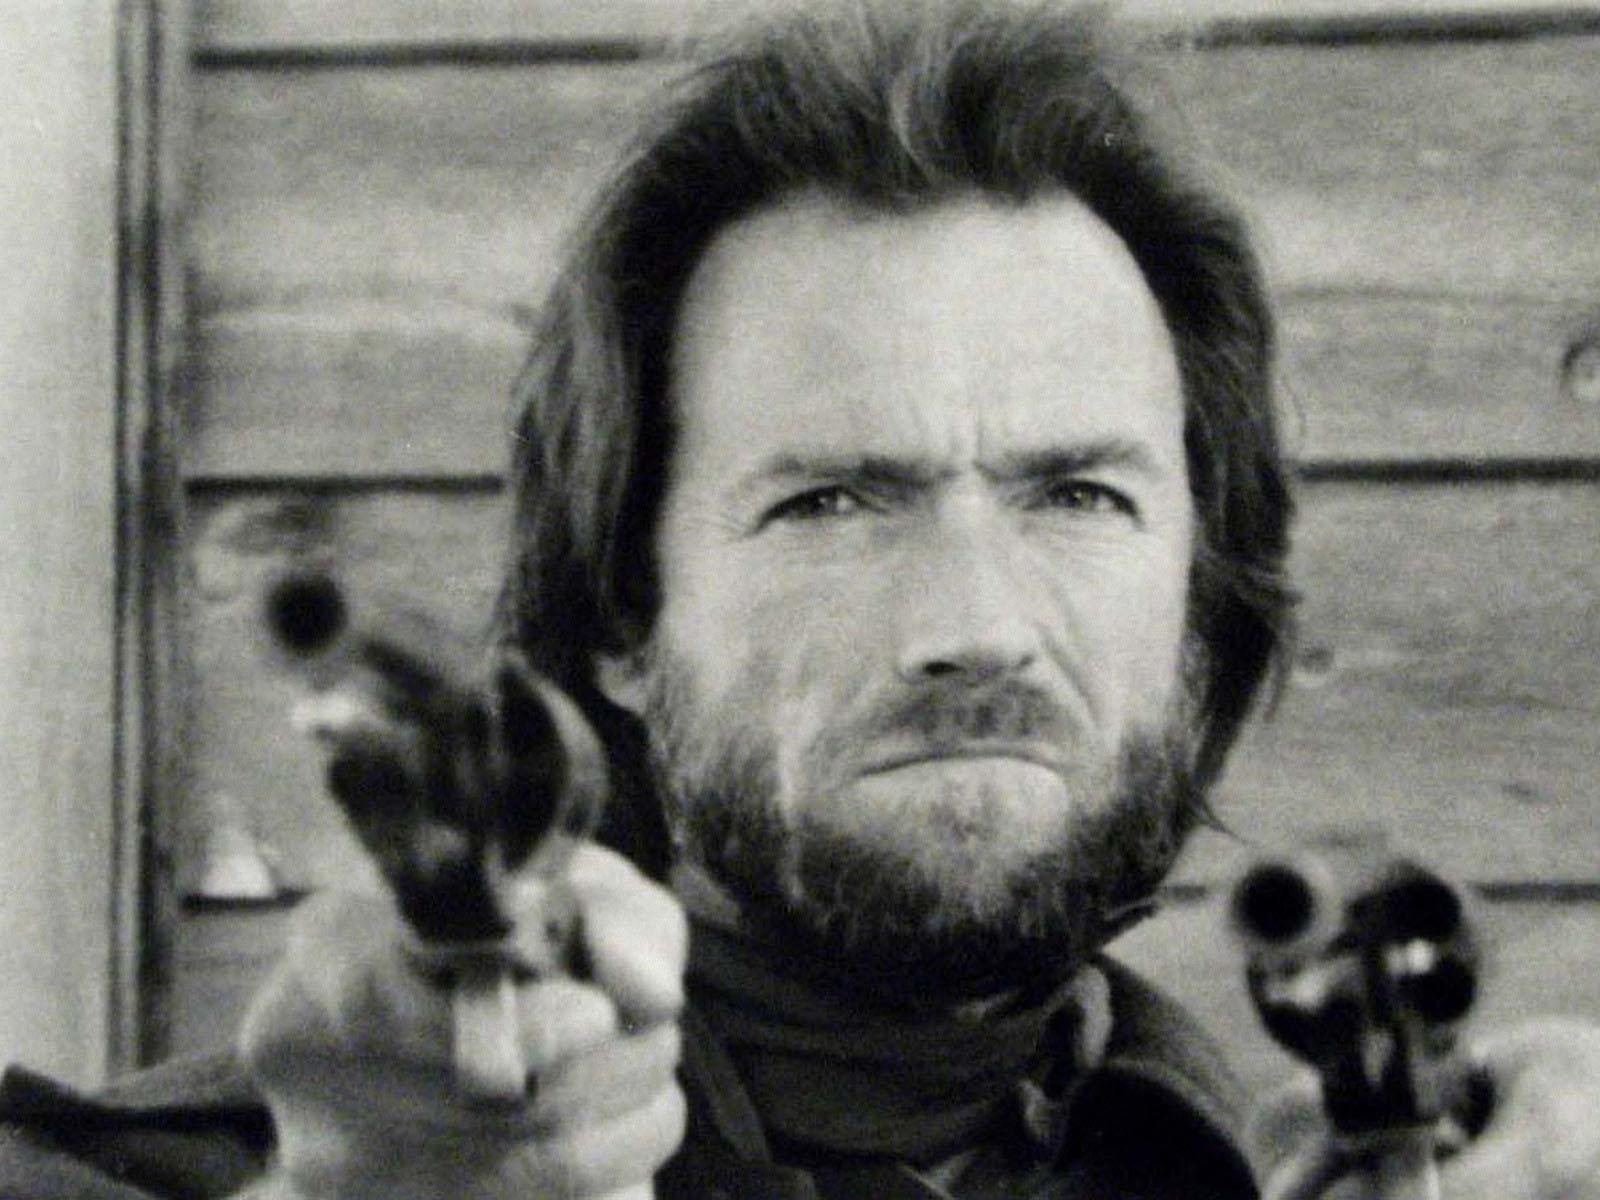 The Outlaw Josey Wales WallpapersThe Outlaw Josey Wales Wallpapers 1600x1200